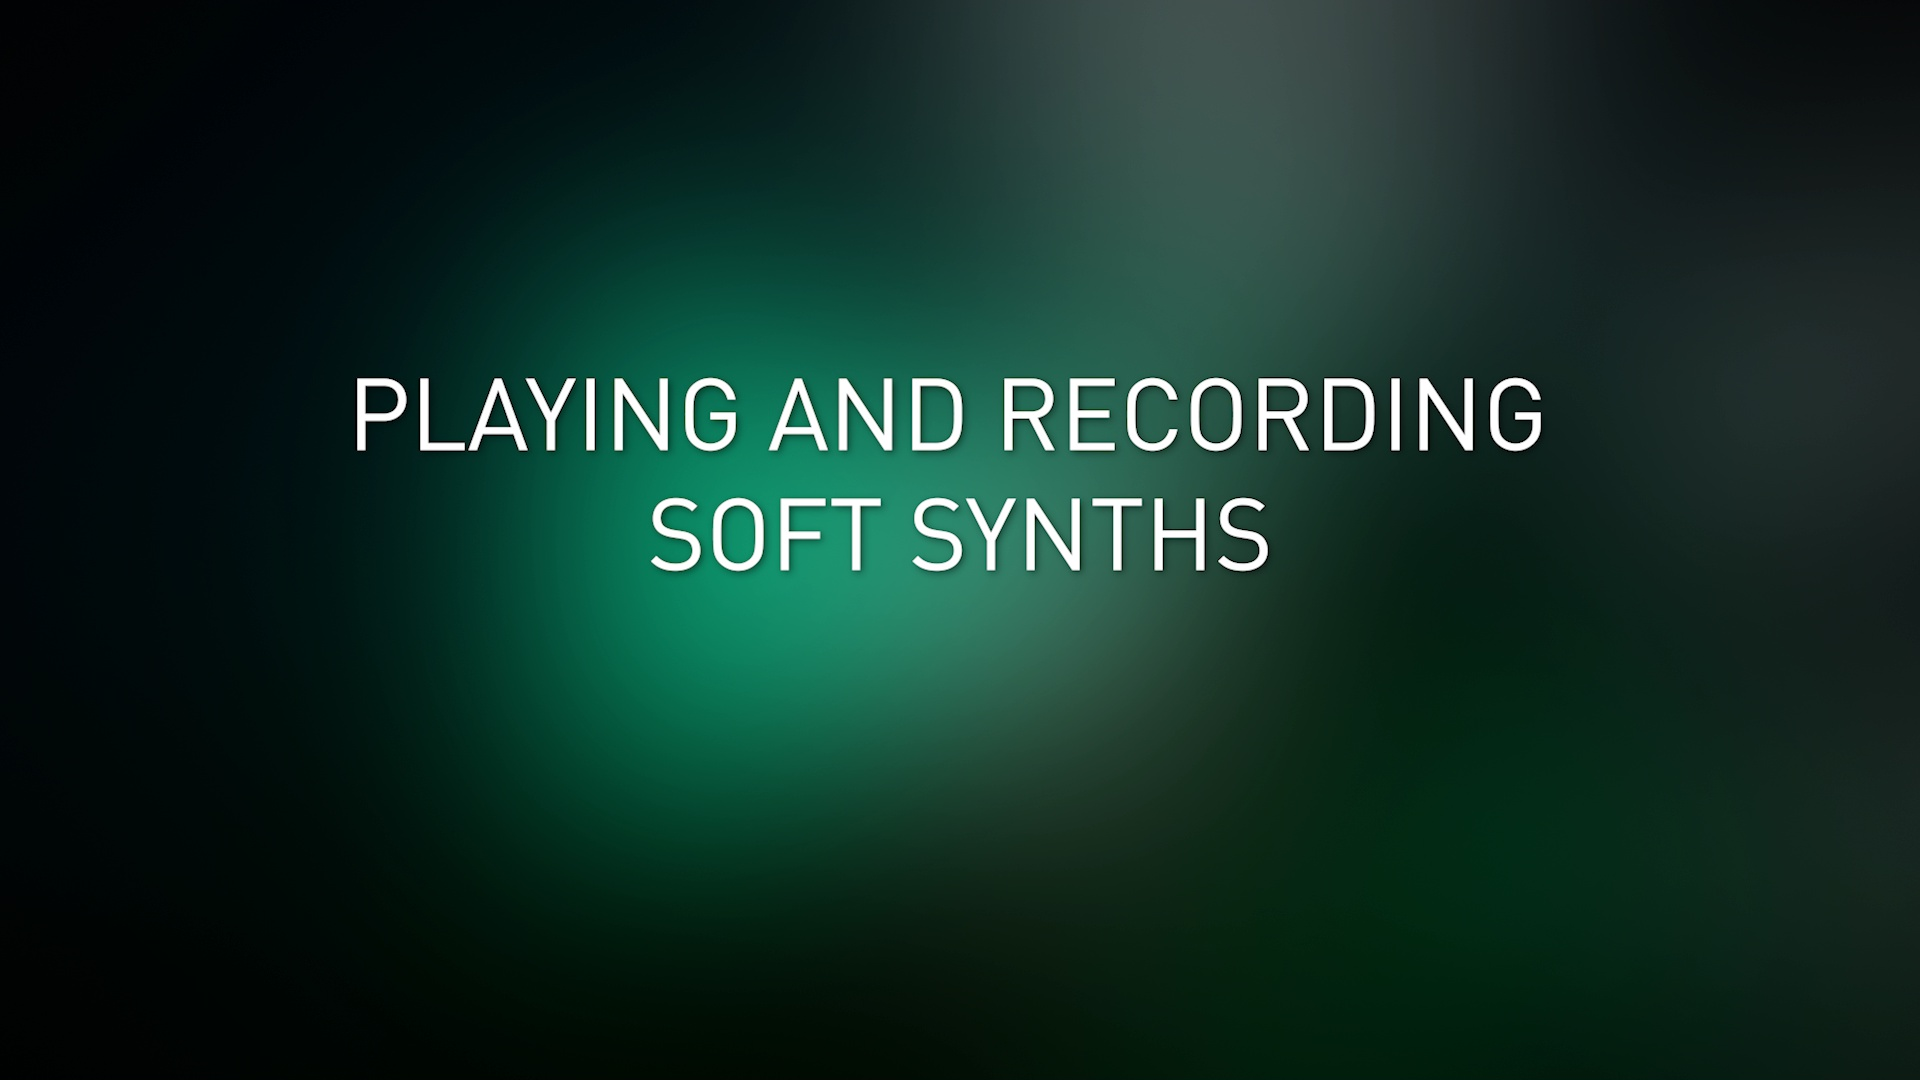 Playing and Recording Soft Synths